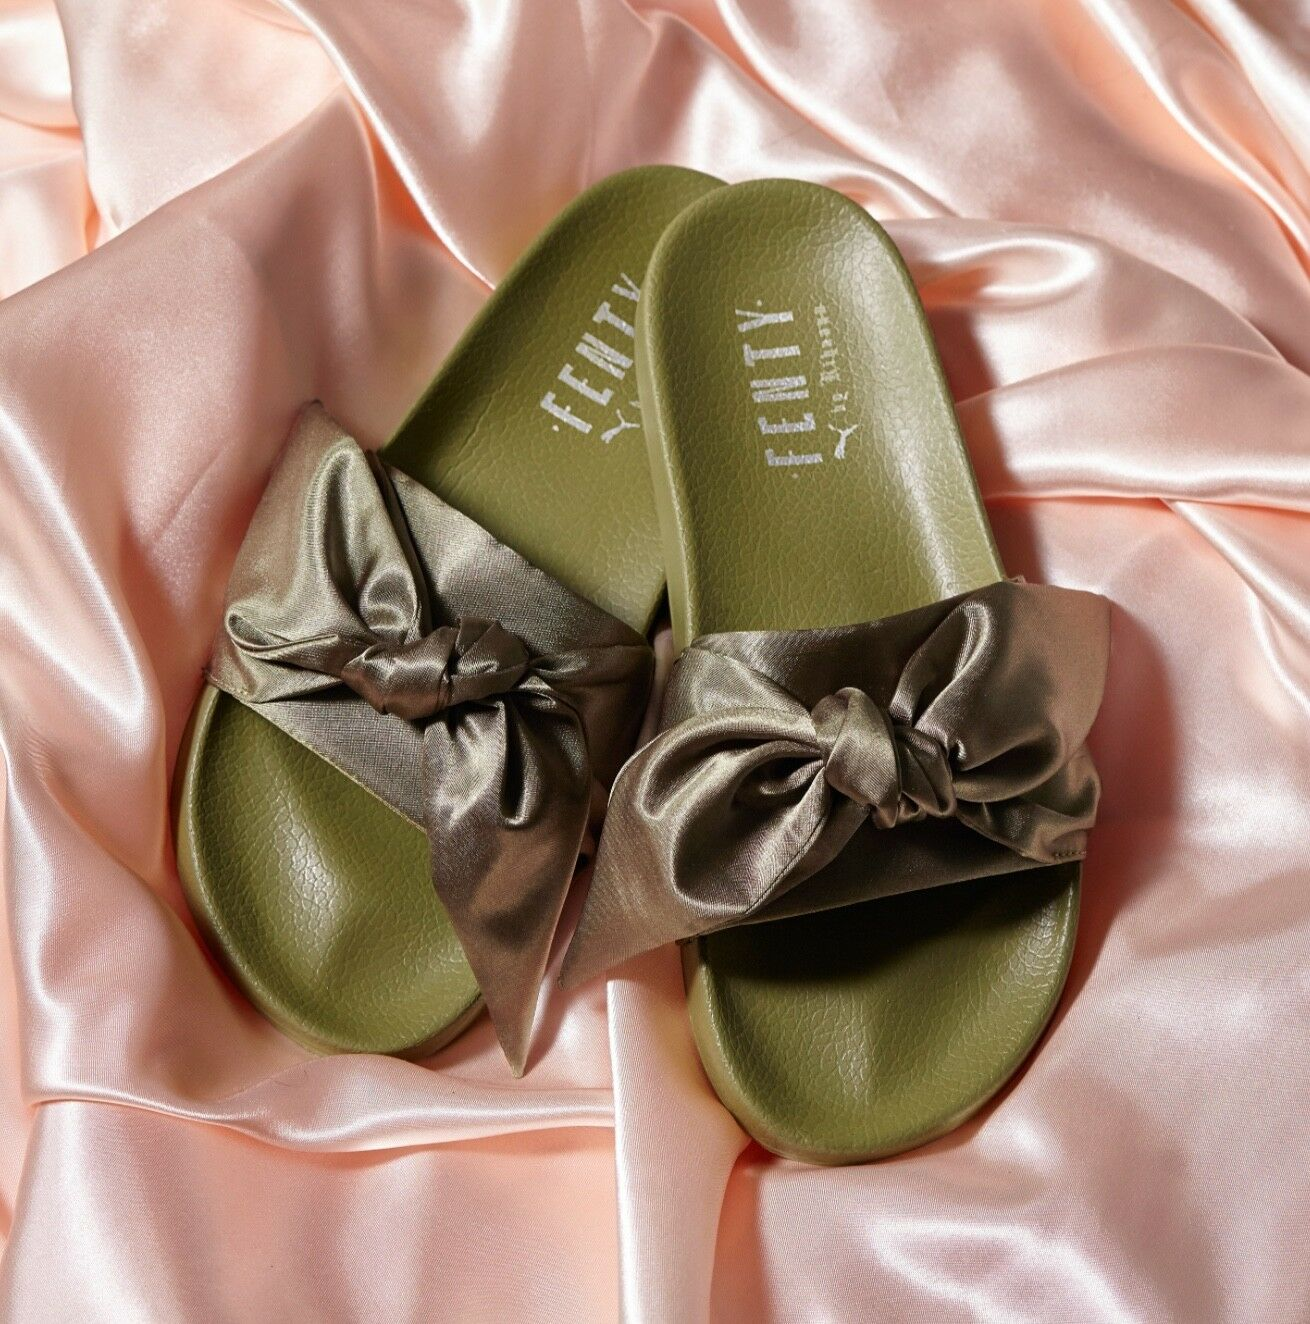 New with Box! Rihanna x Puma Fenty Bow Slide US5.5 Sandals Olive Women's Size US5.5 Slide ba8360